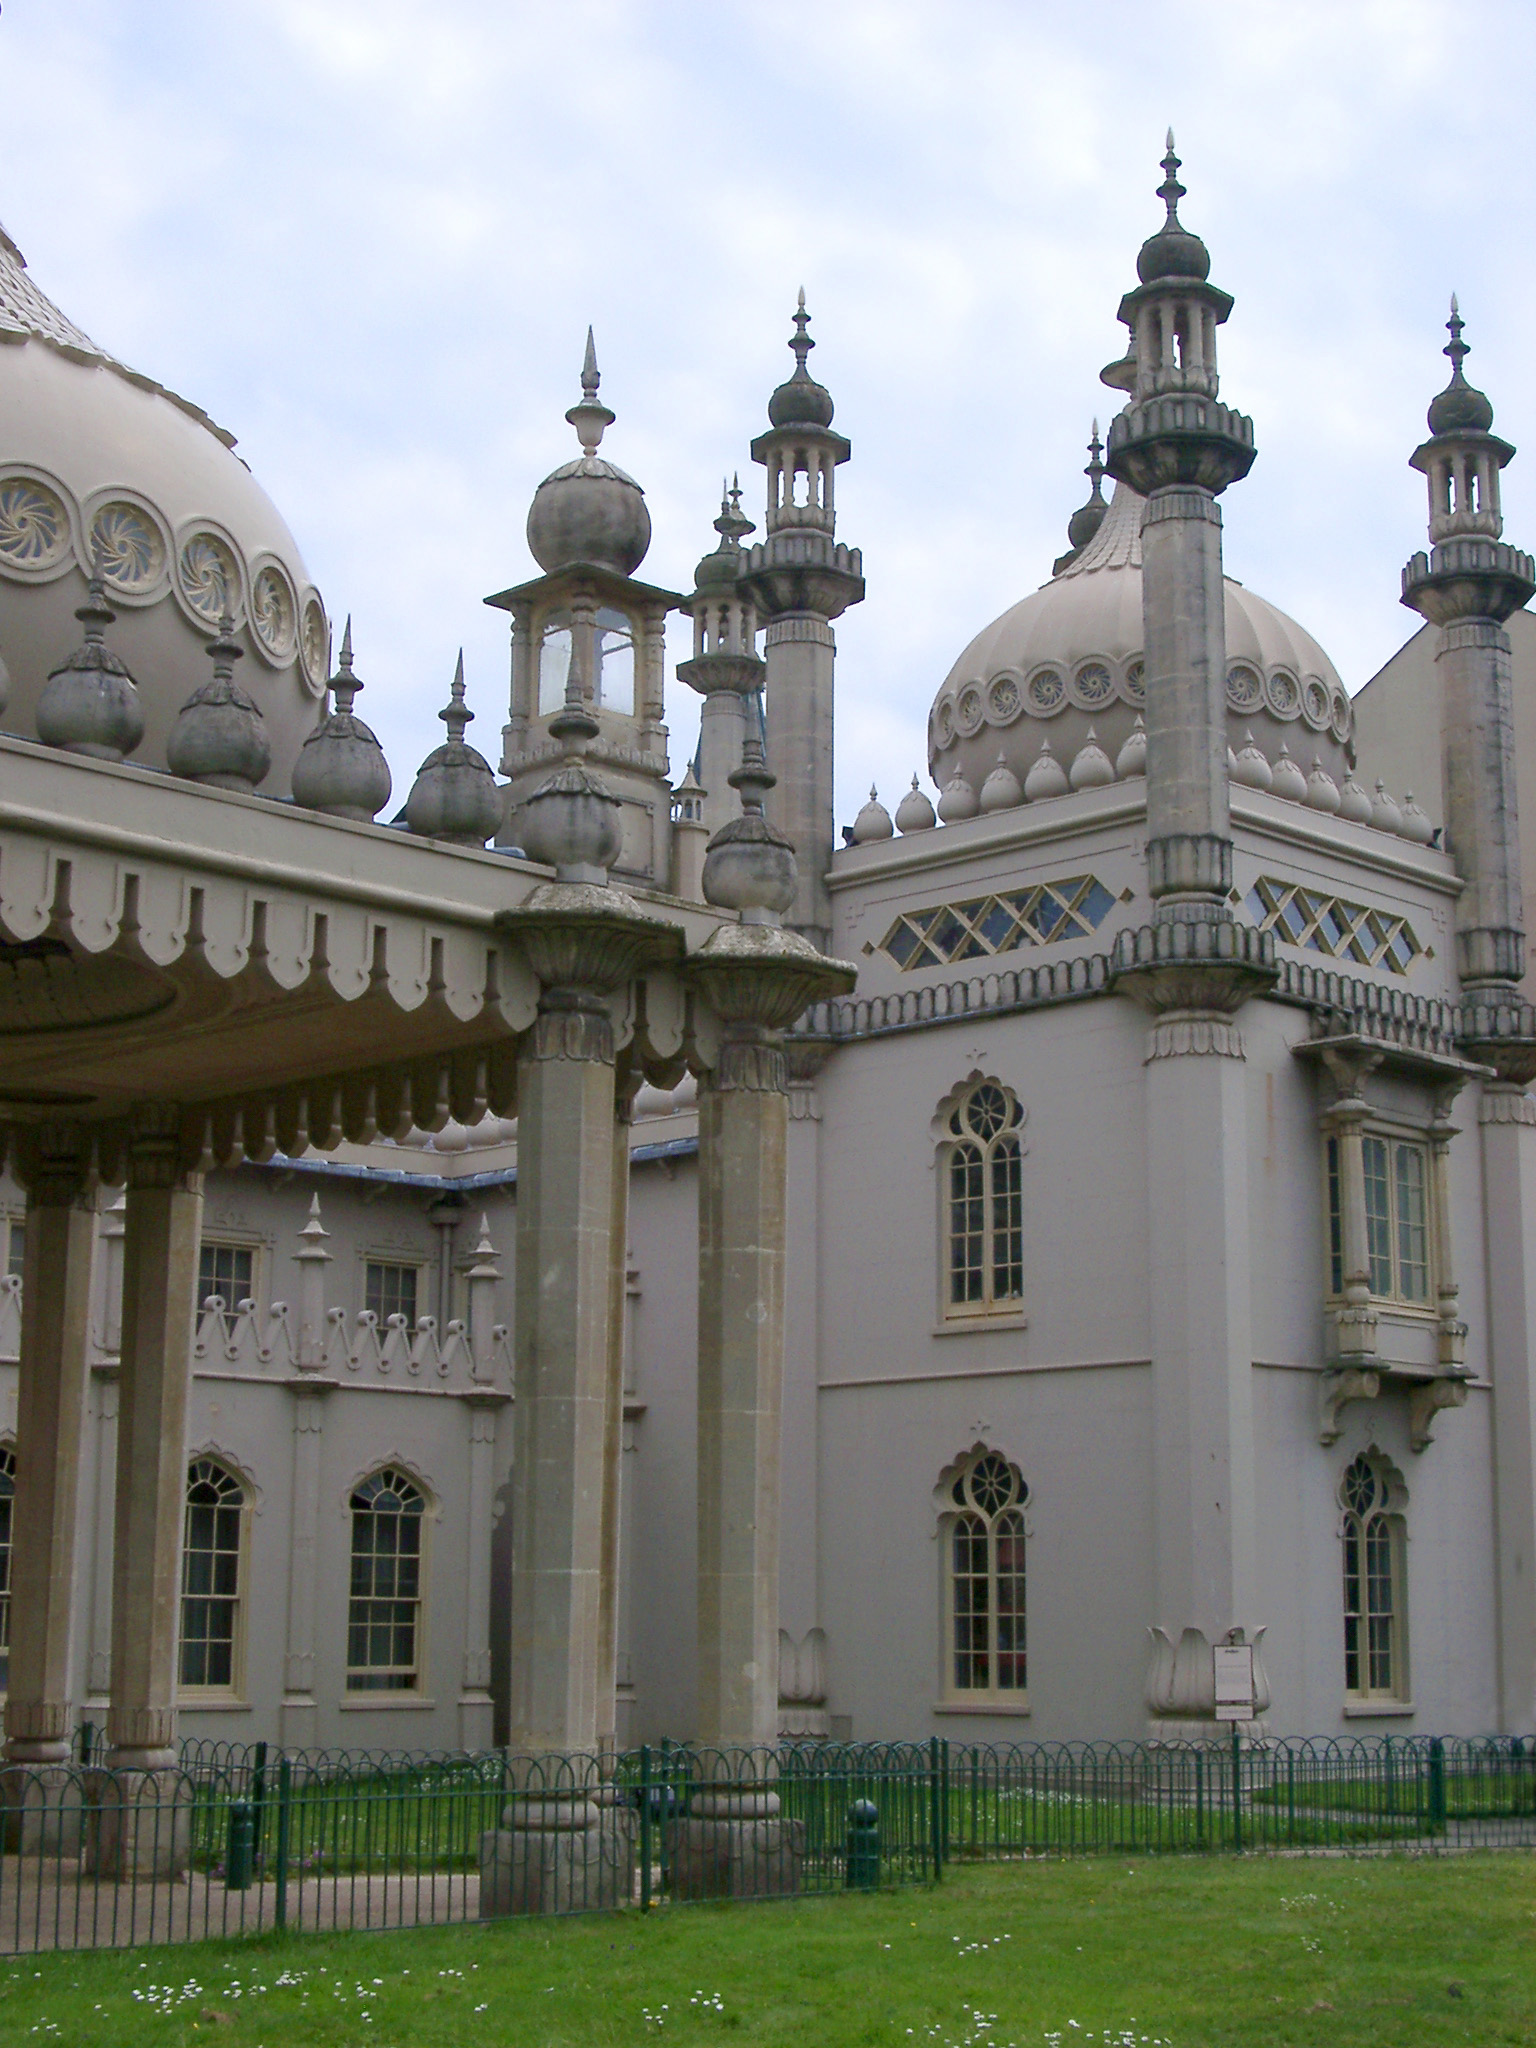 Royal Pavilion Building, the Former Royal Residence in Brighton, England.